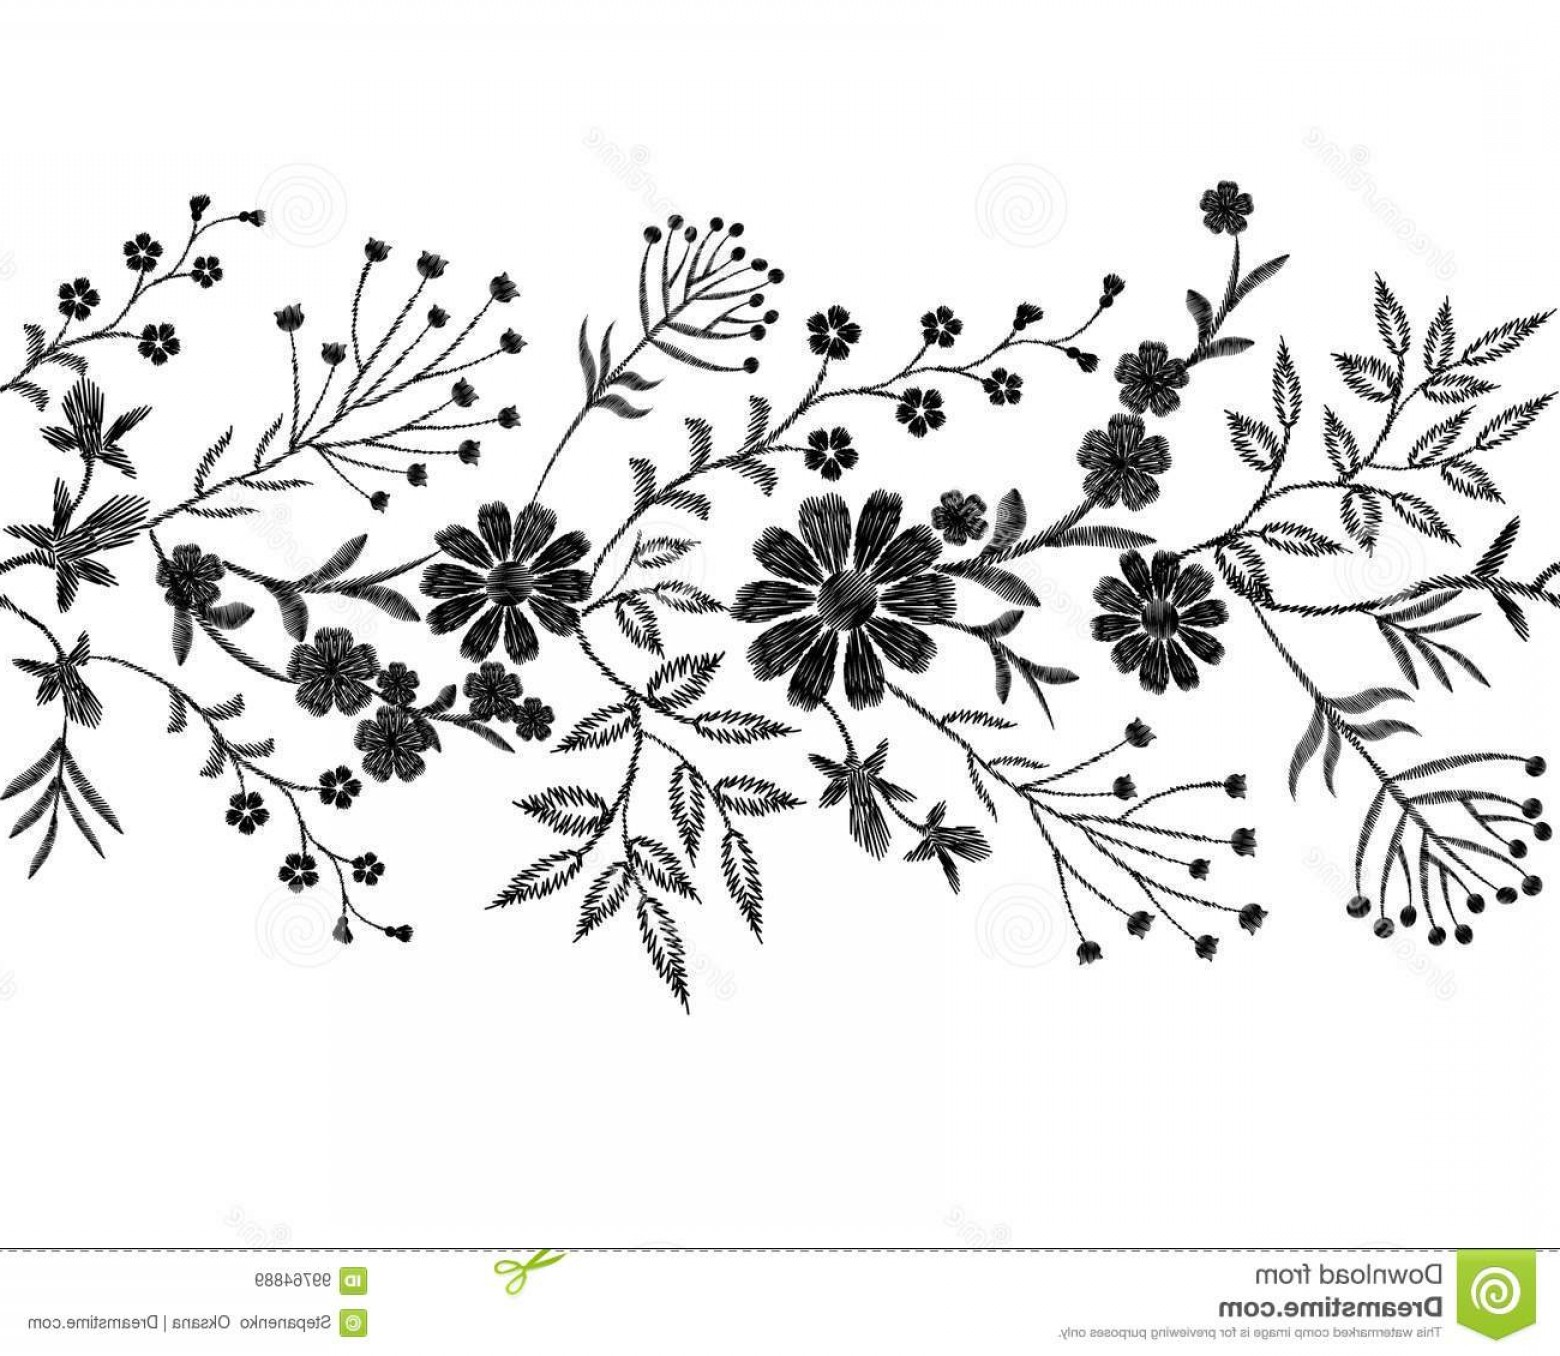 Vector Flower Band: Black Floral Embroidery Ornament Fashion Clothes Decoration Seamless Border Band Stitch Texture Embroidered Field Flower Leaves Image